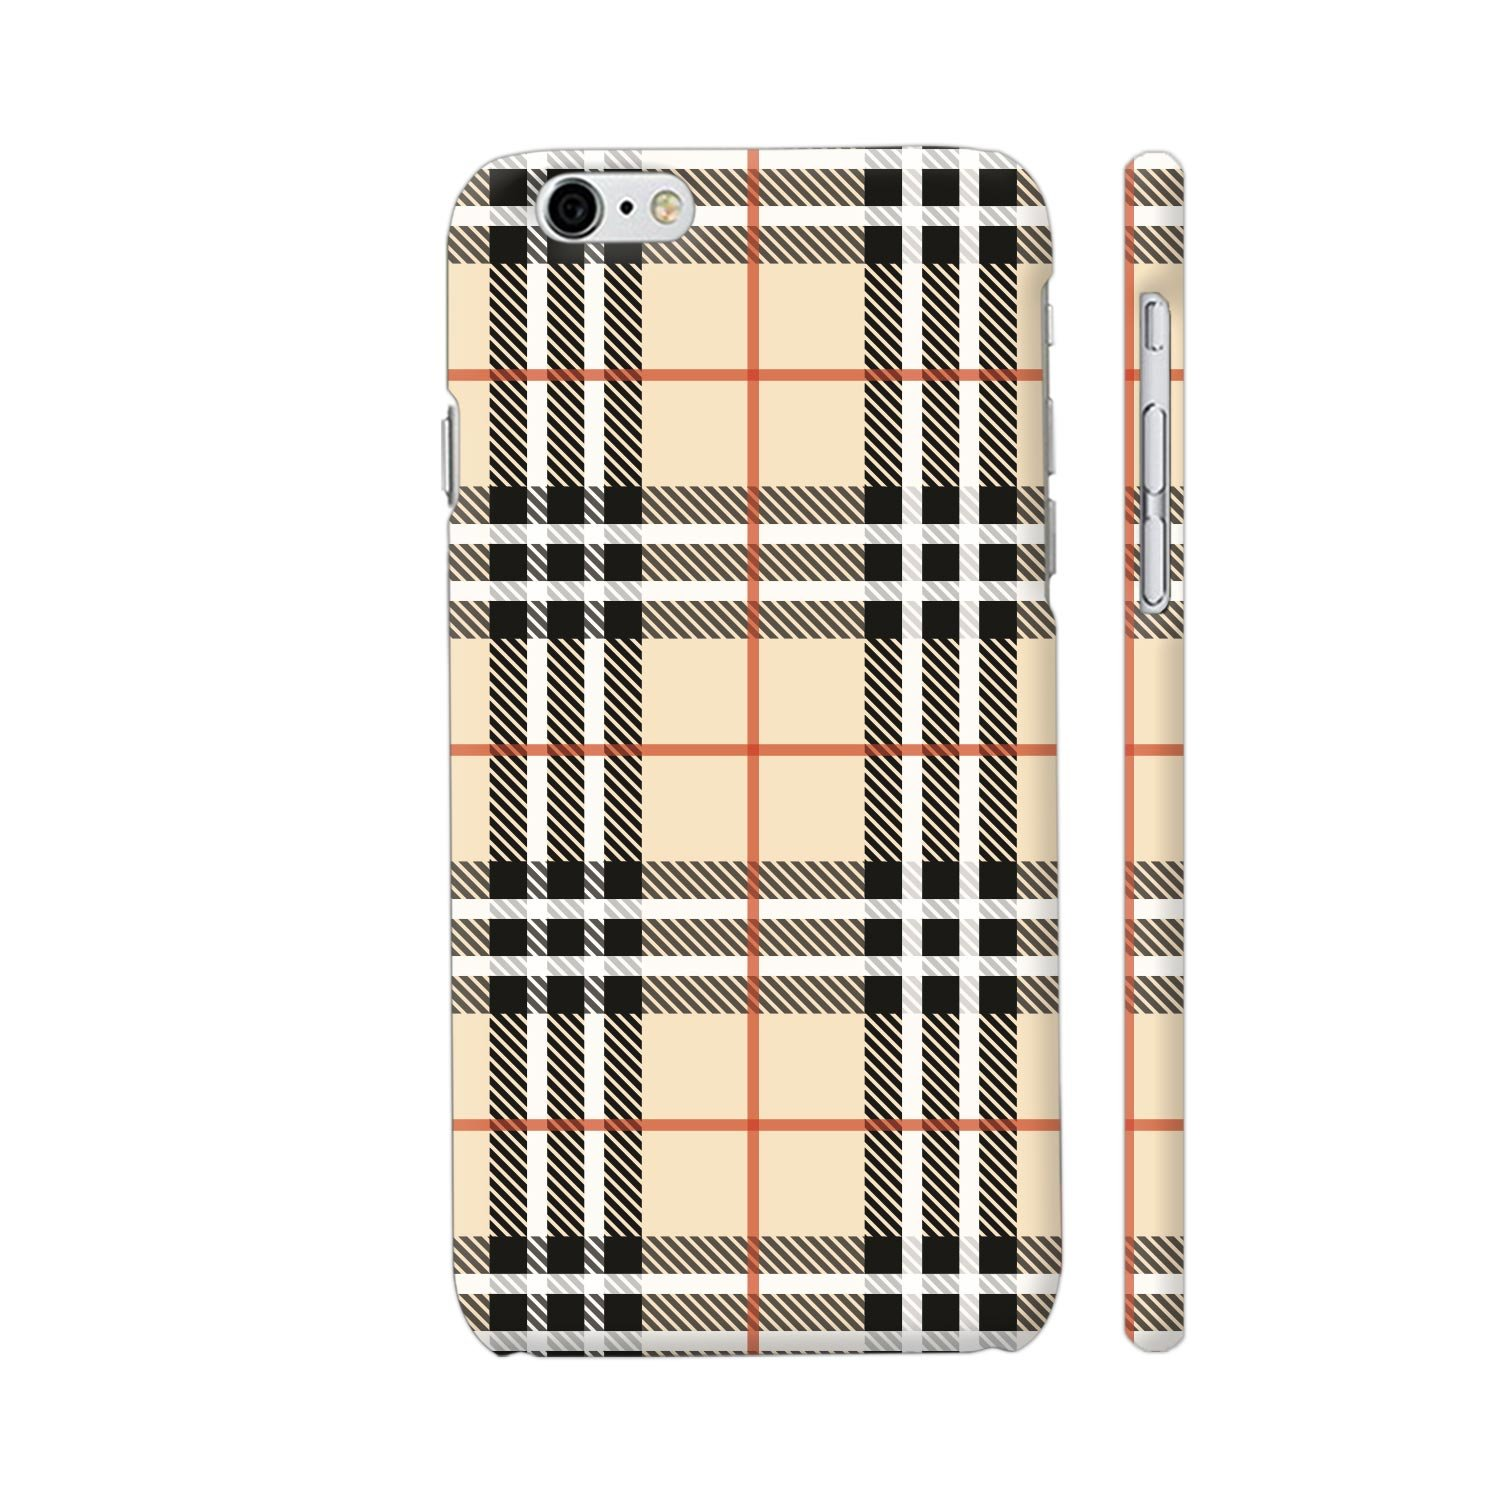 cover burberry iphone 6s